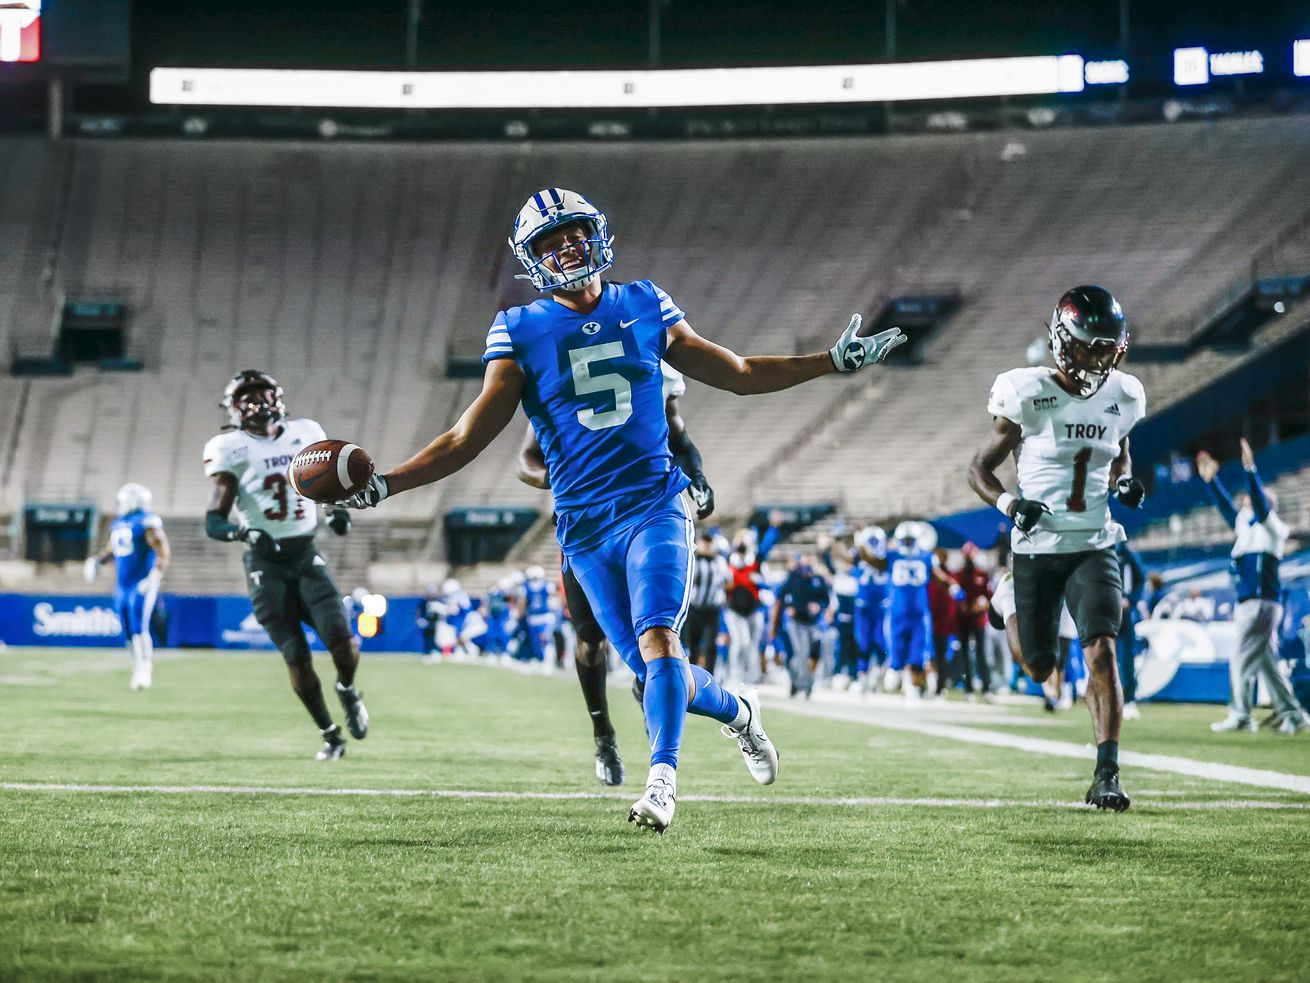 BYU unleashes its passing game, trounces Troy, 48-7